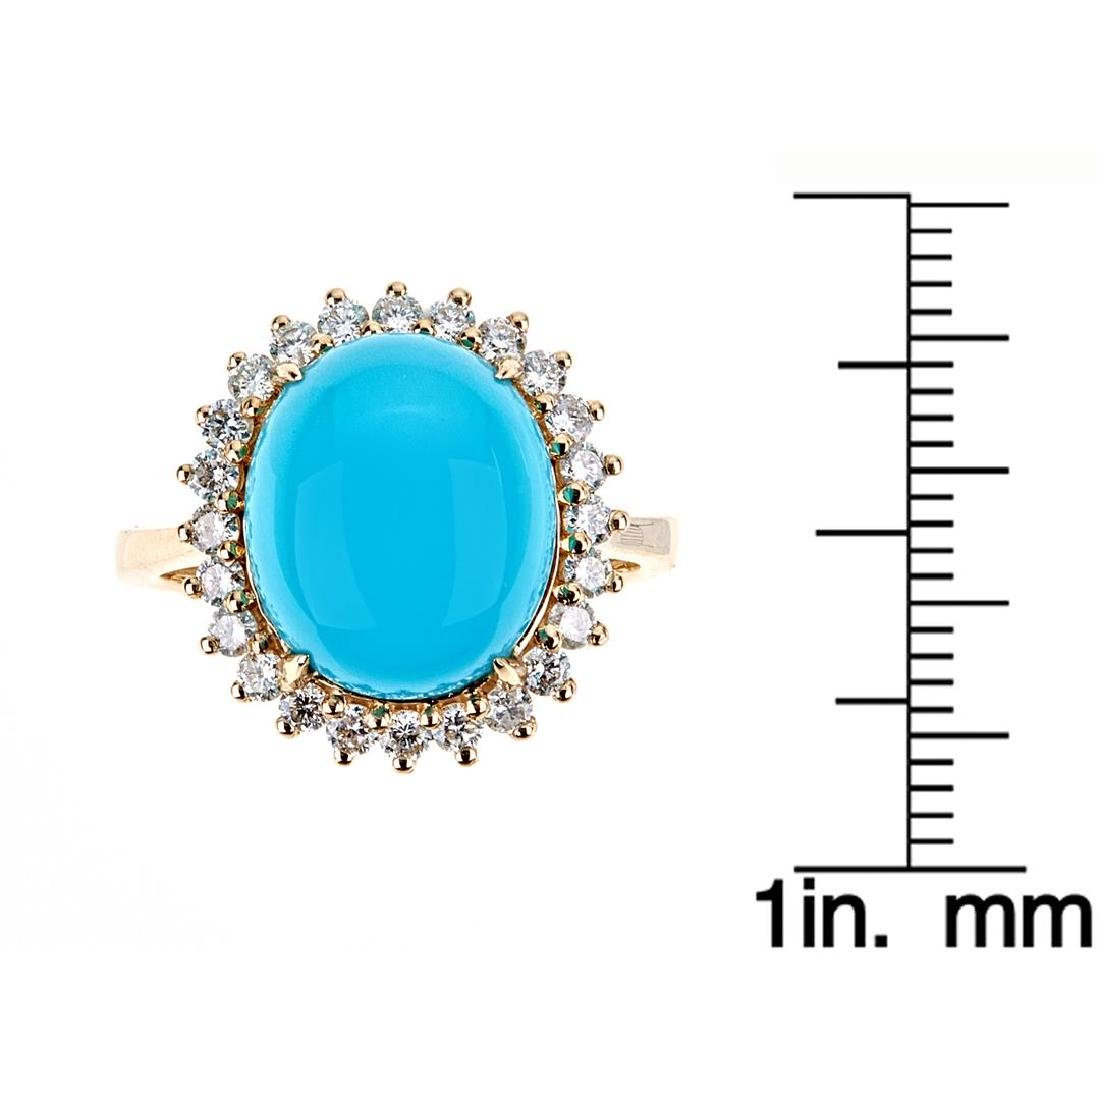 5.18 ctw Turquoise and Diamond Ring - 14KT Yellow Gold - 4